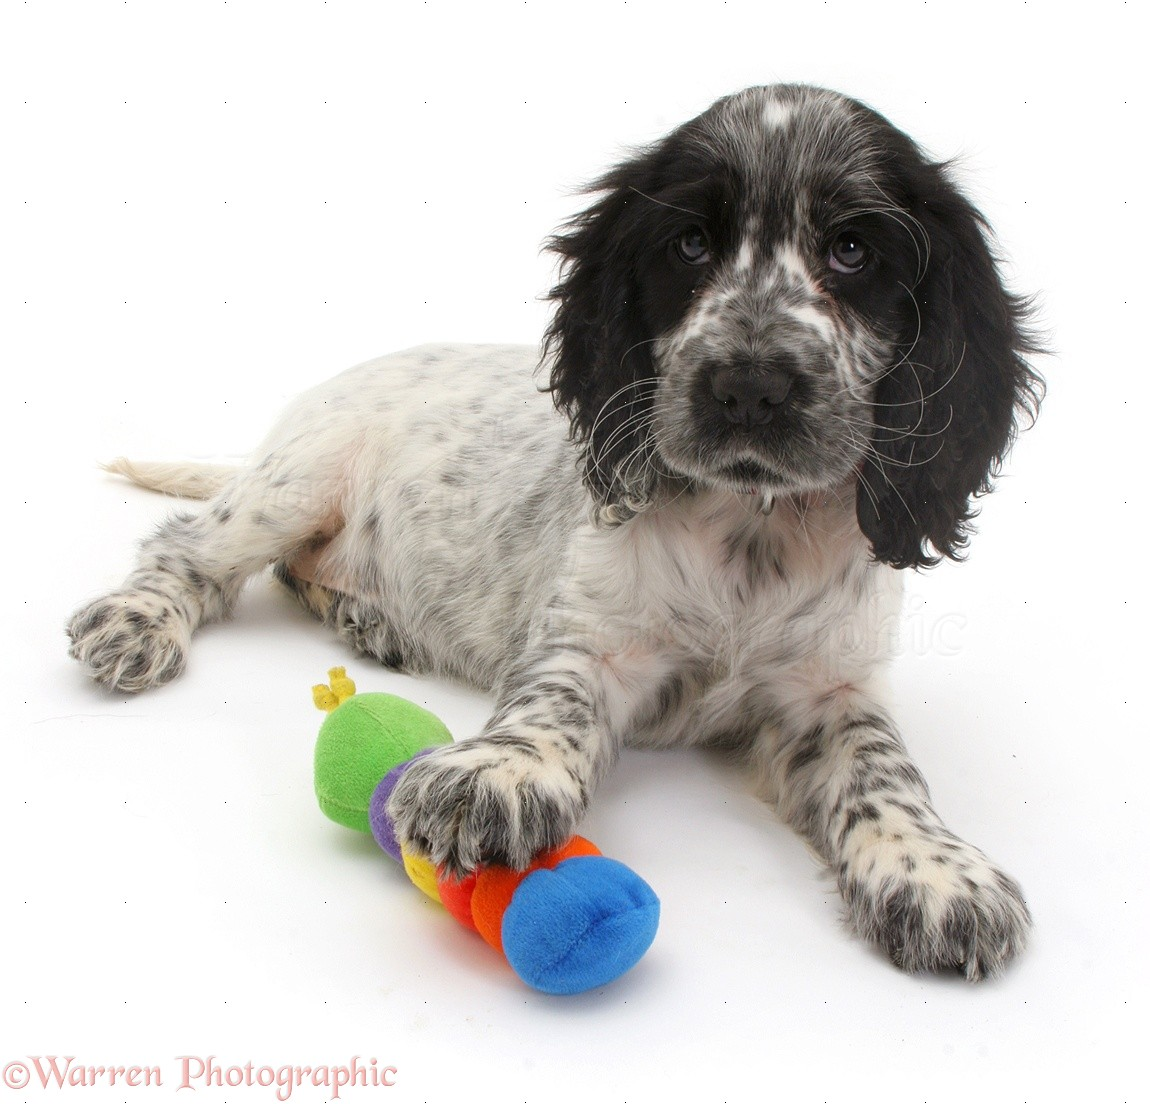 Cocker Spaniel puppy photo - WP09105